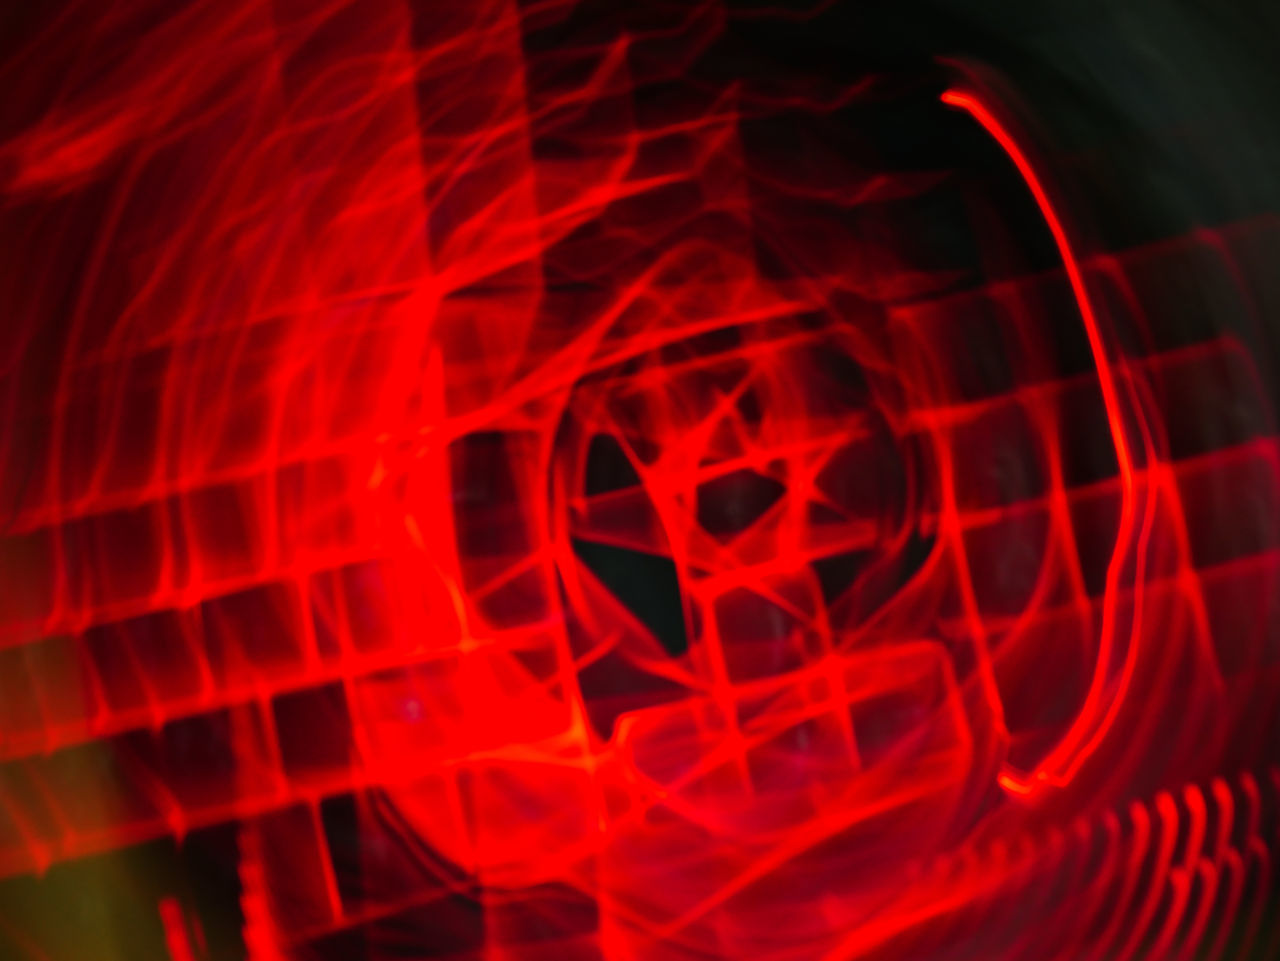 red, abstract, danger, defocused, close-up, black background, no people, illuminated, night